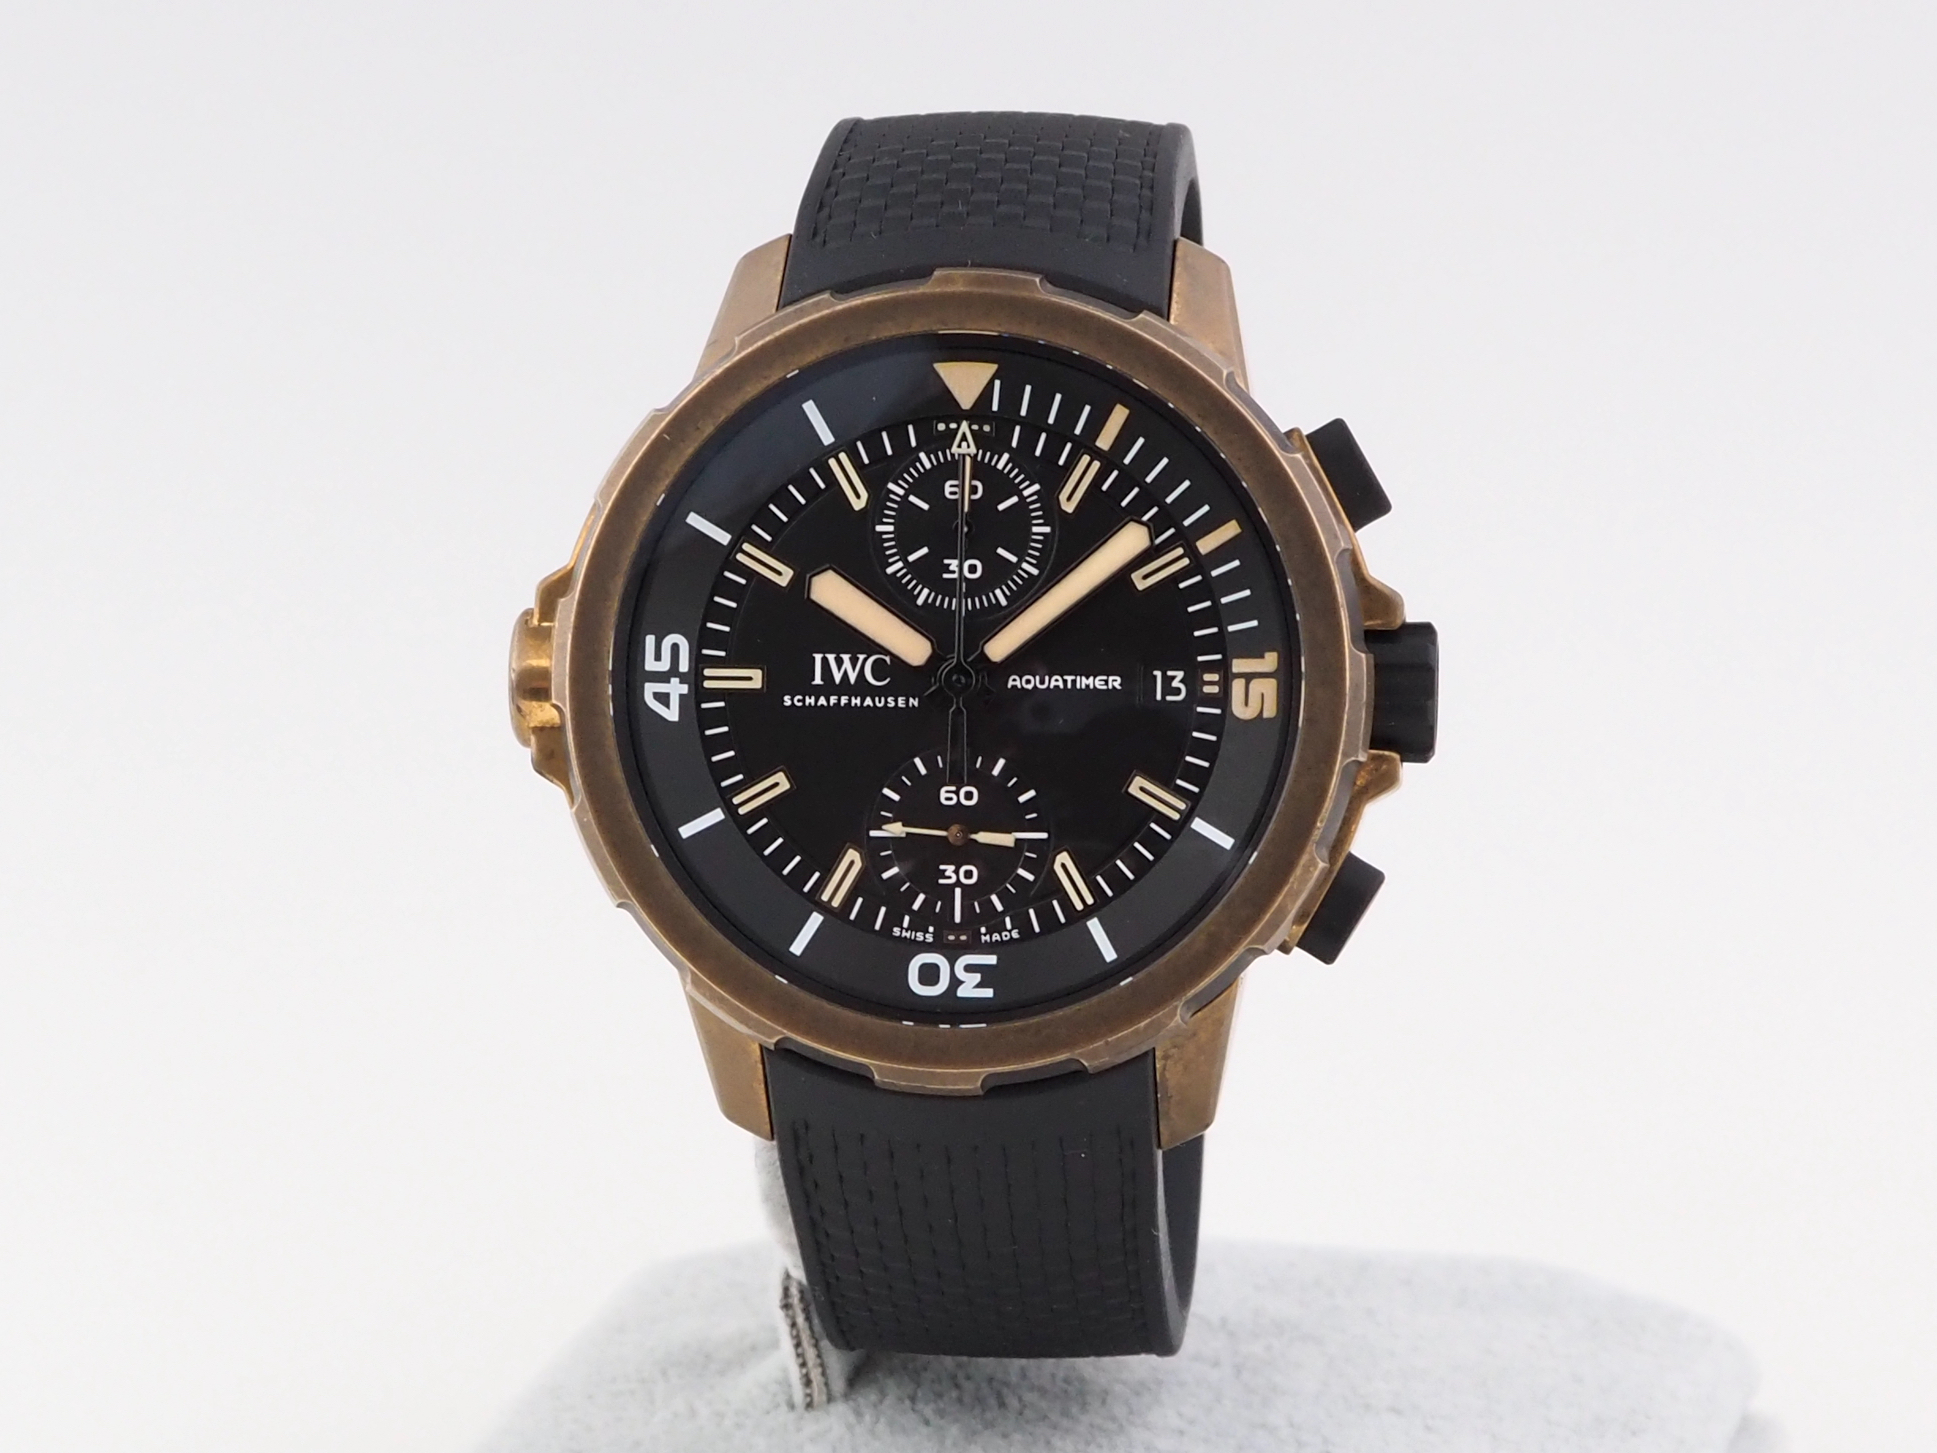 IWC Aquatimer Chronograph Expedition Charles Darwin